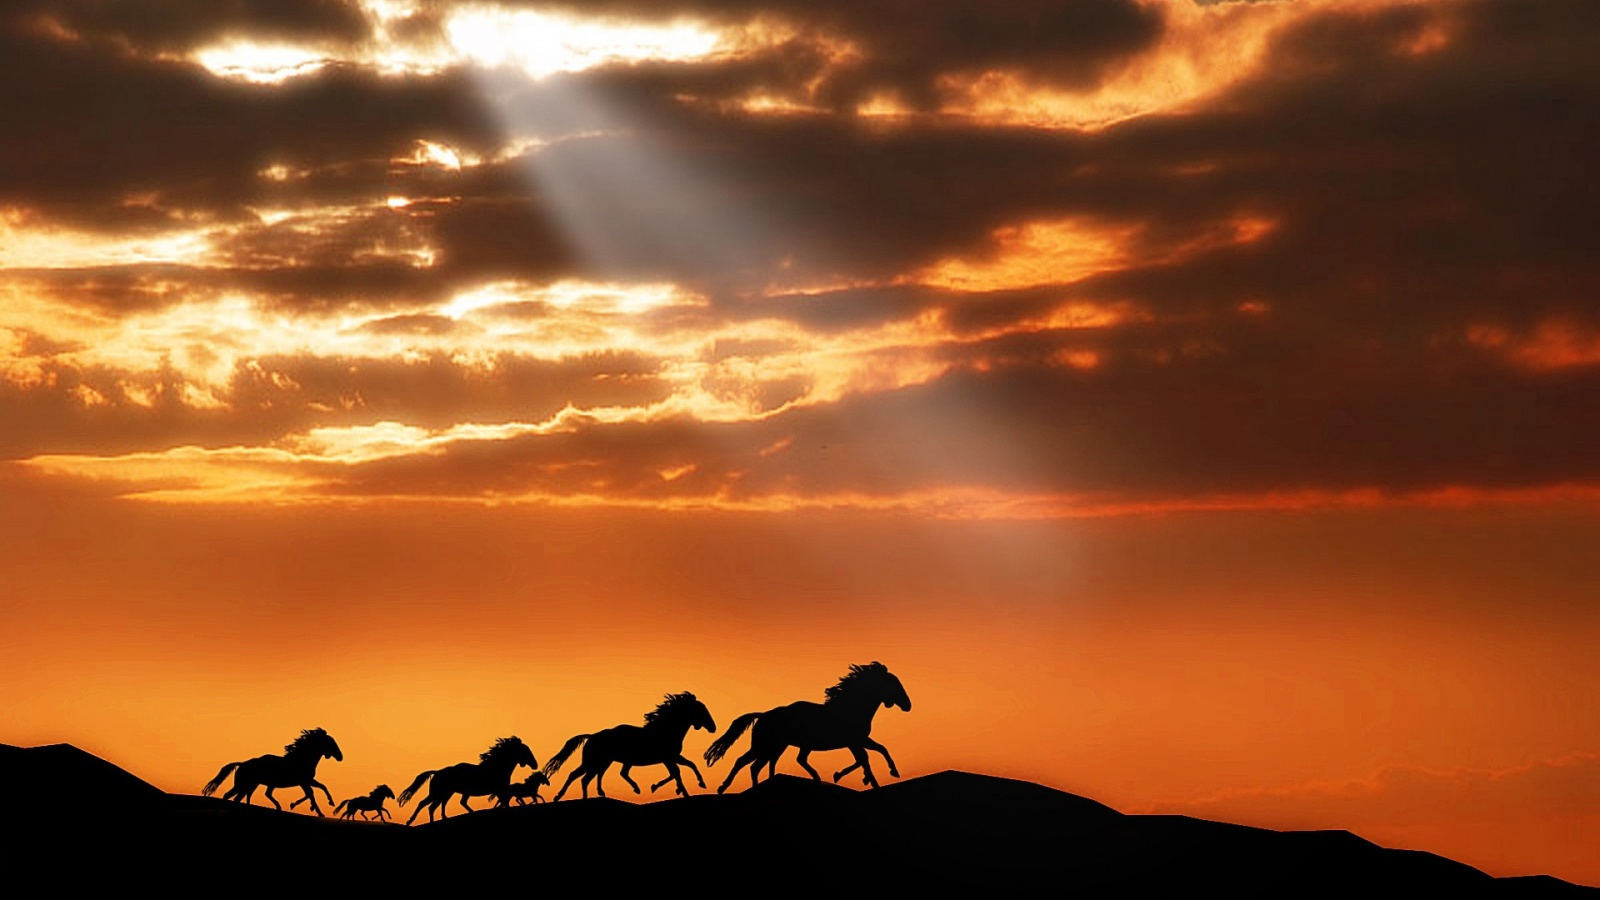 horses running at sunset wallpapers 1600x900 262243